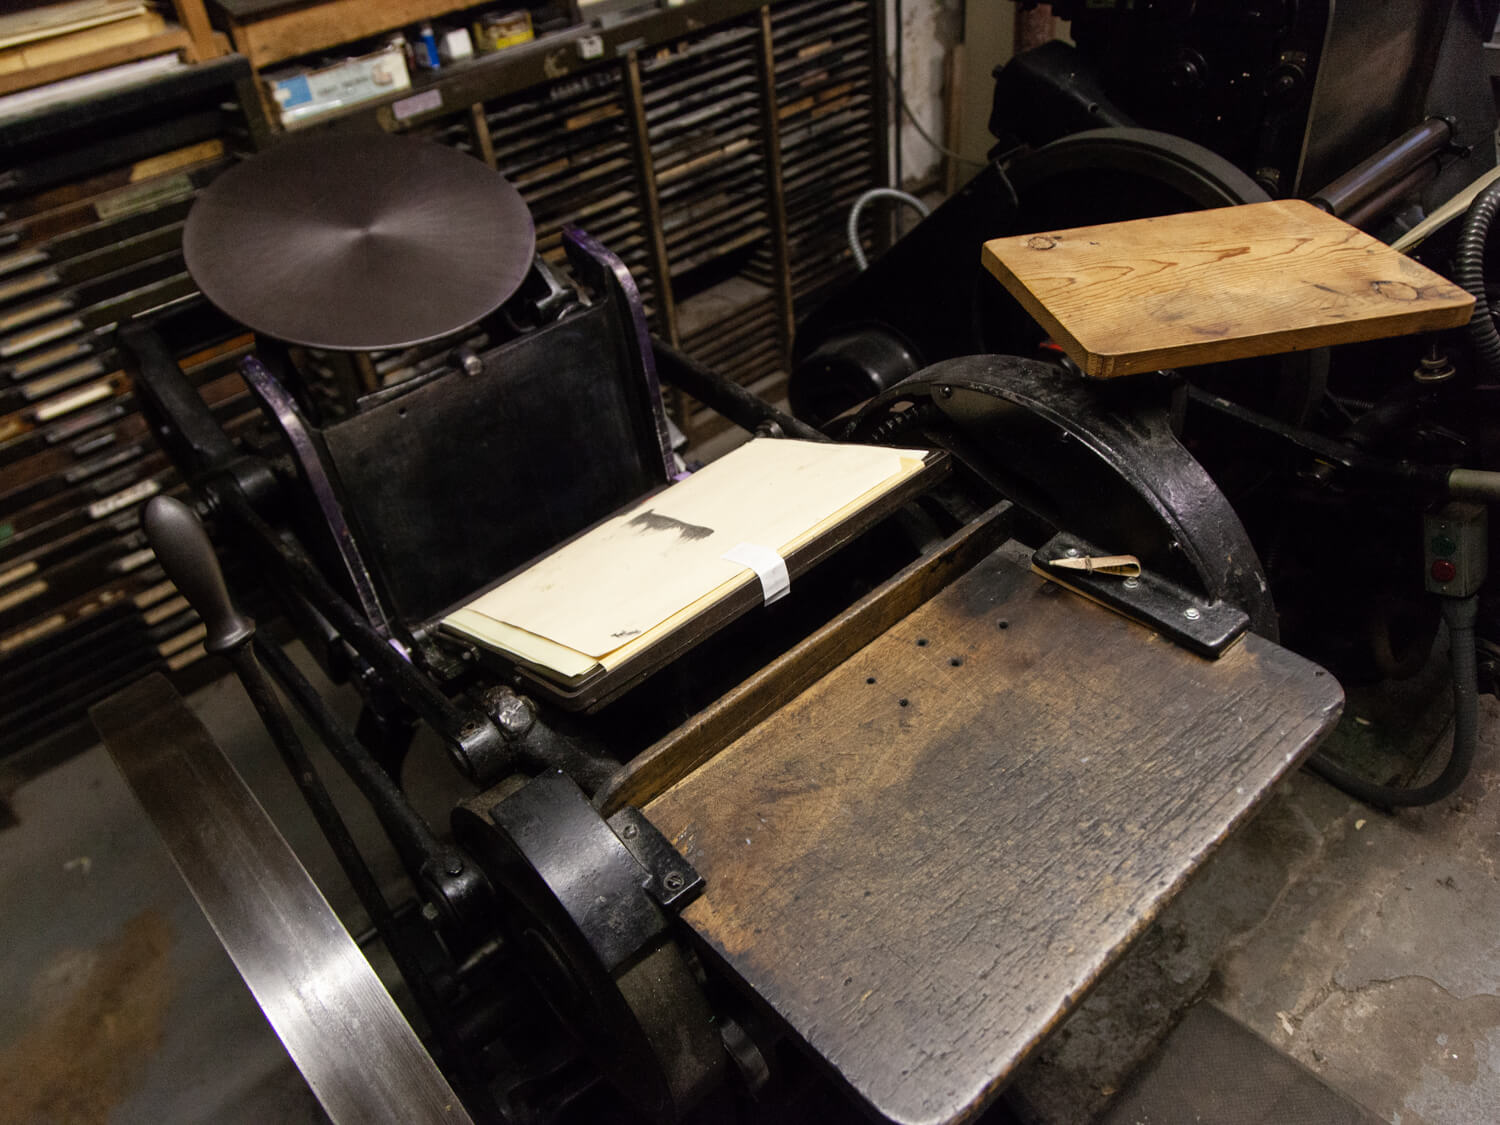 Chandler & Price - The Chandler & Price is our workhorse. It's an antique 1920's letterpress and is where we do most of our stationery printing.